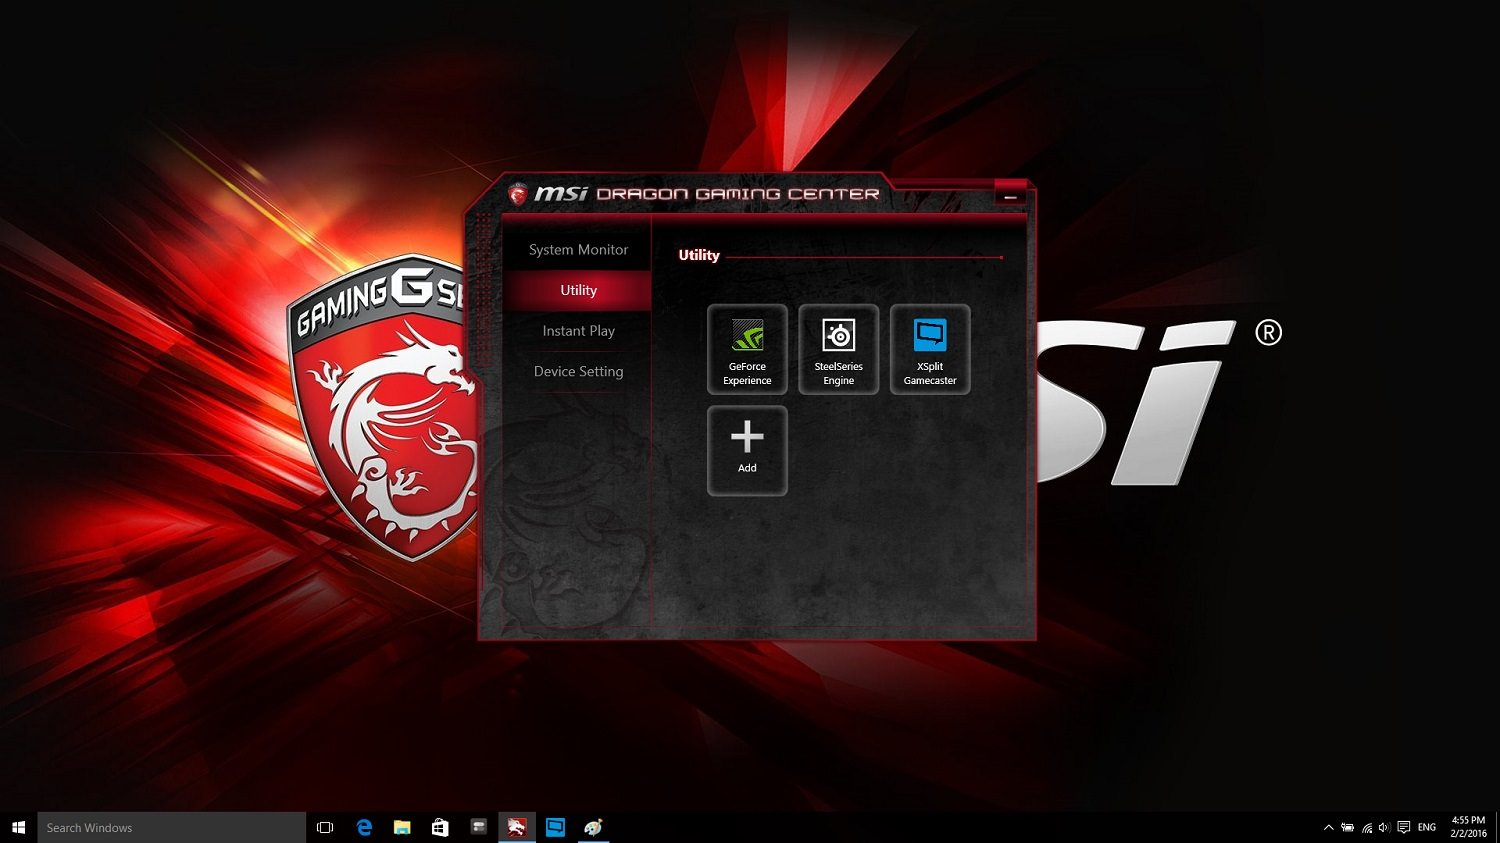 Zoomg MSI GT72S Daragon Gaming Center  22